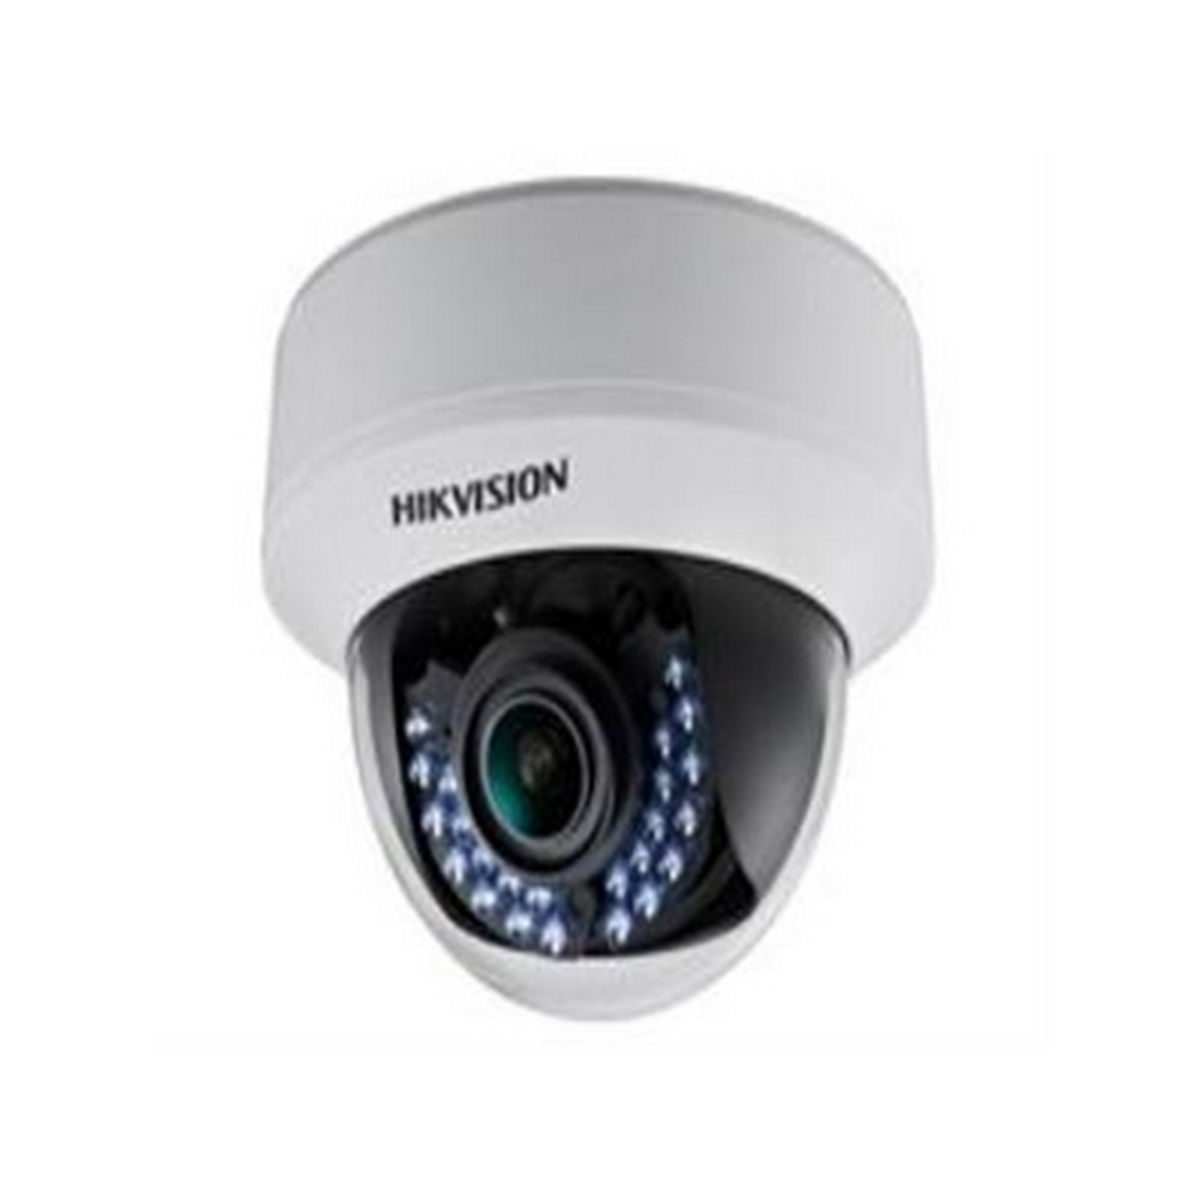 DS-2CE56D5T-VFIT3 HIKVISION Outdoor IR Turret, HD1080p, 2.8-12mm, 50m EXIR, Day/Night, True WDR, Smart IR, UTC Menu, IP66, 12VDC